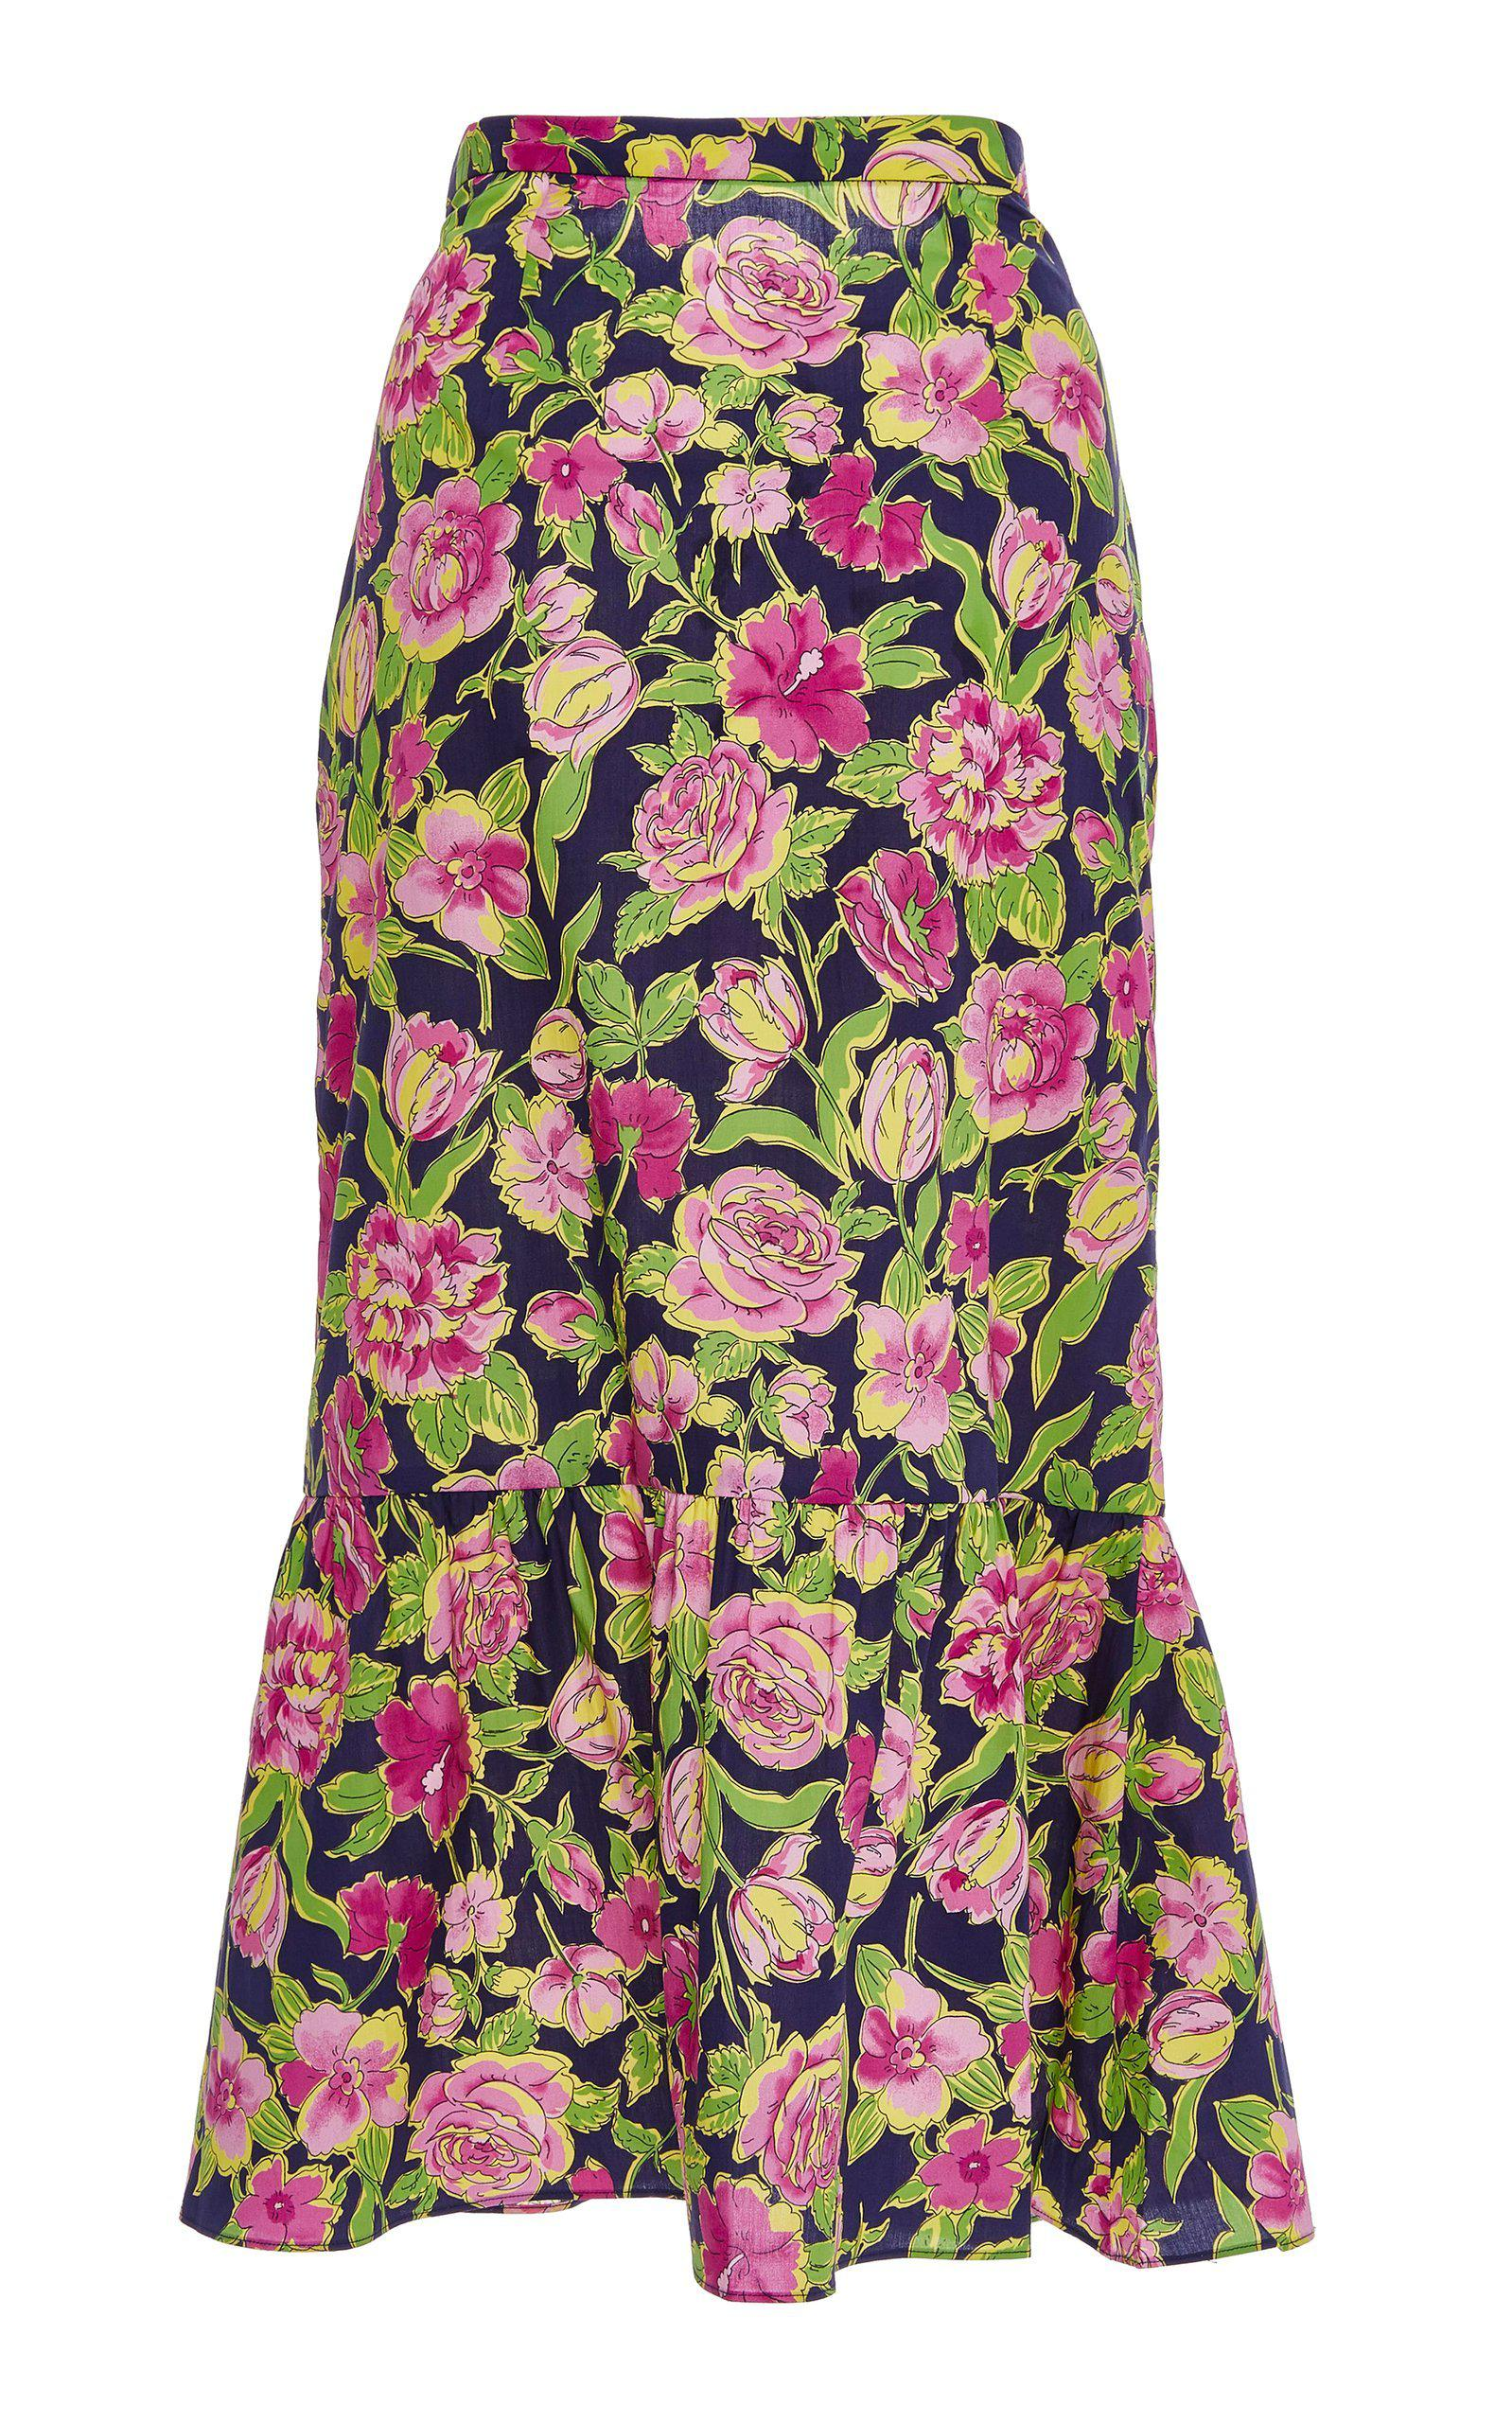 206301fd2 MDS Stripes Pencil Skirt With Ruffle Floral - Lyst